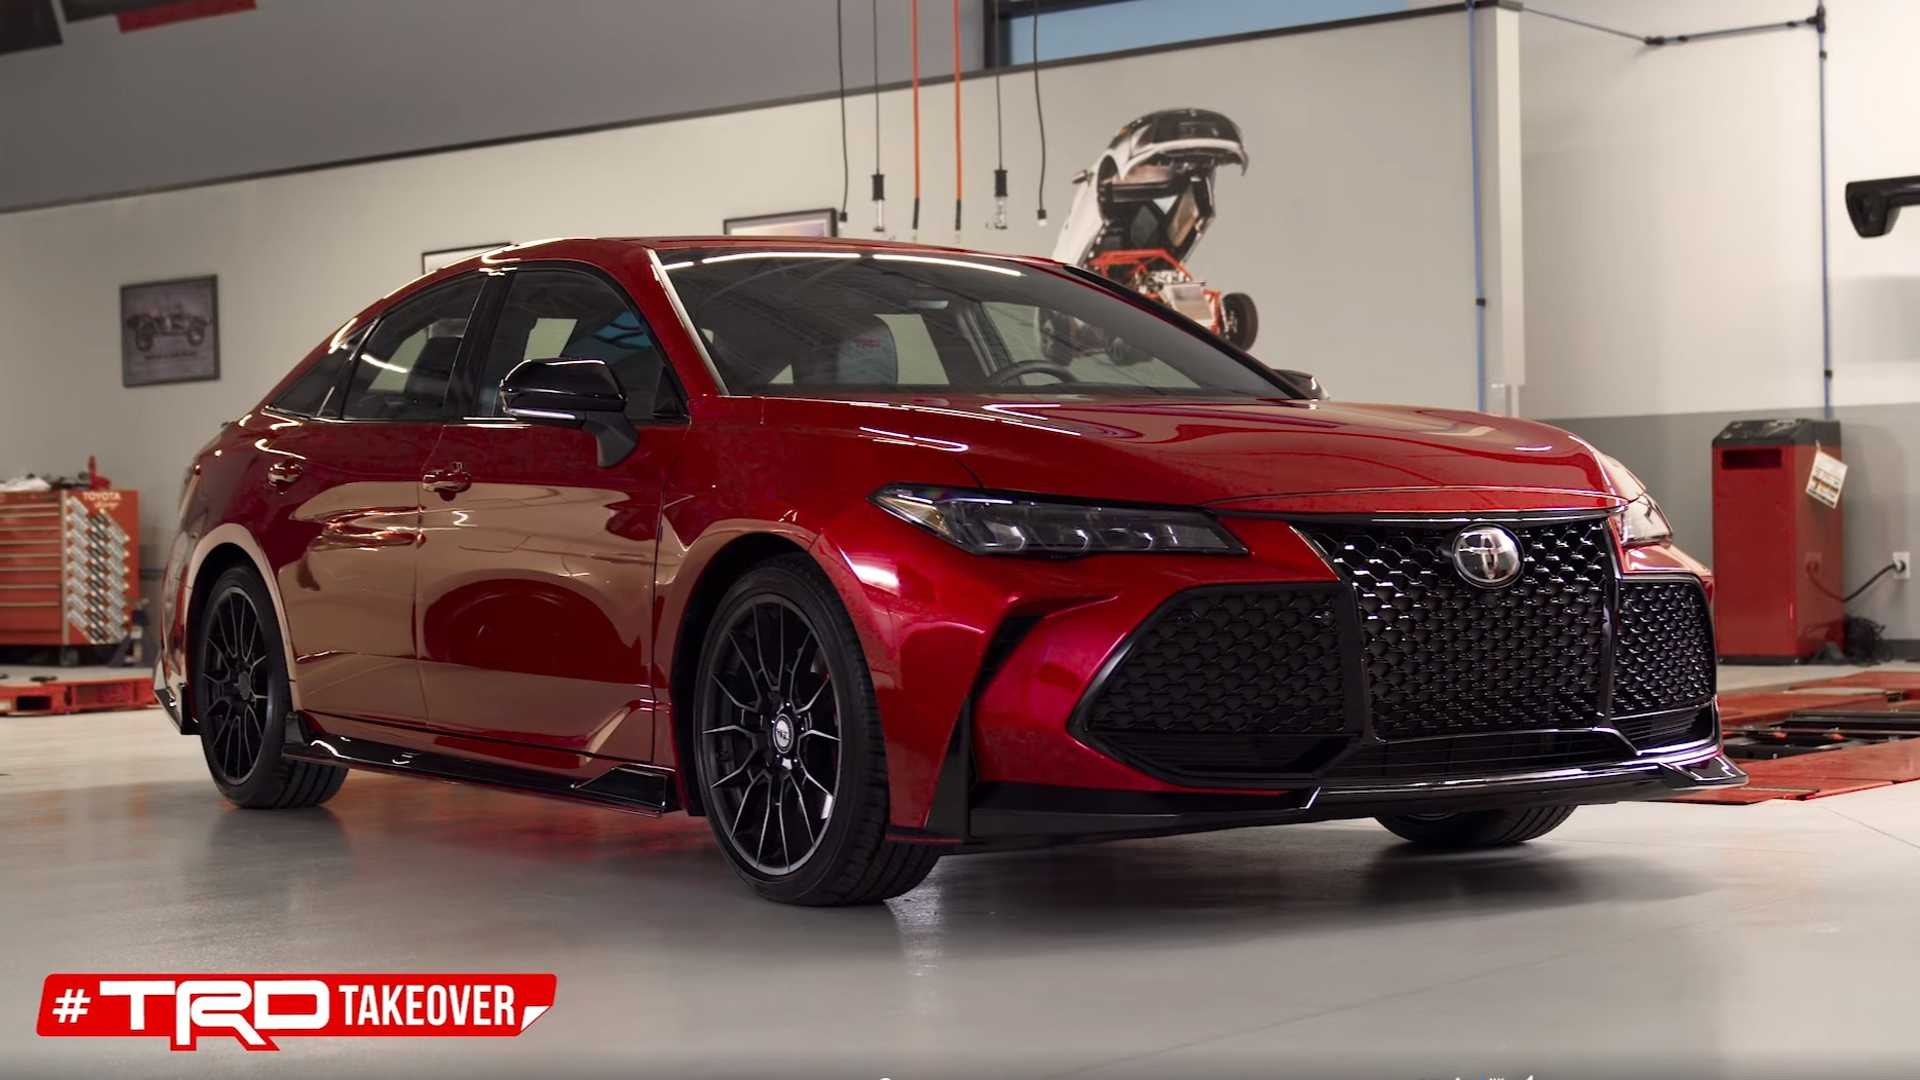 Toyota Camry Awd >> Toyota Teases Camry TRD, Avalon TRD Like There's No Tomorrow - autoevolution